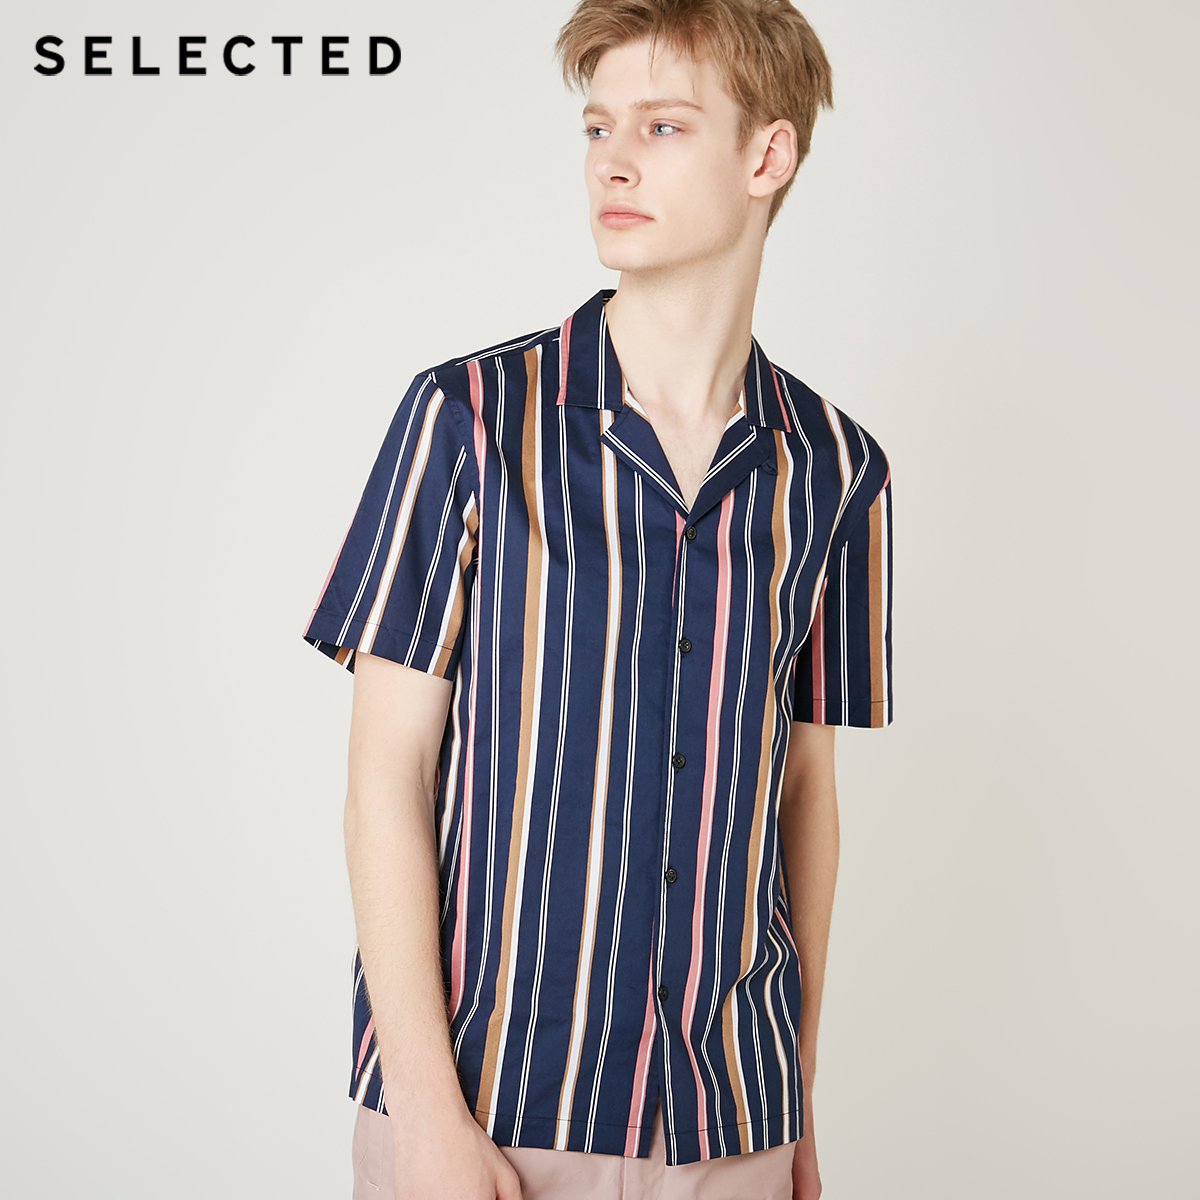 SELECTED Men's Loose Fit 100% Cotton Striped Contrast Stitching Short-sleeved Shirt S|419204551